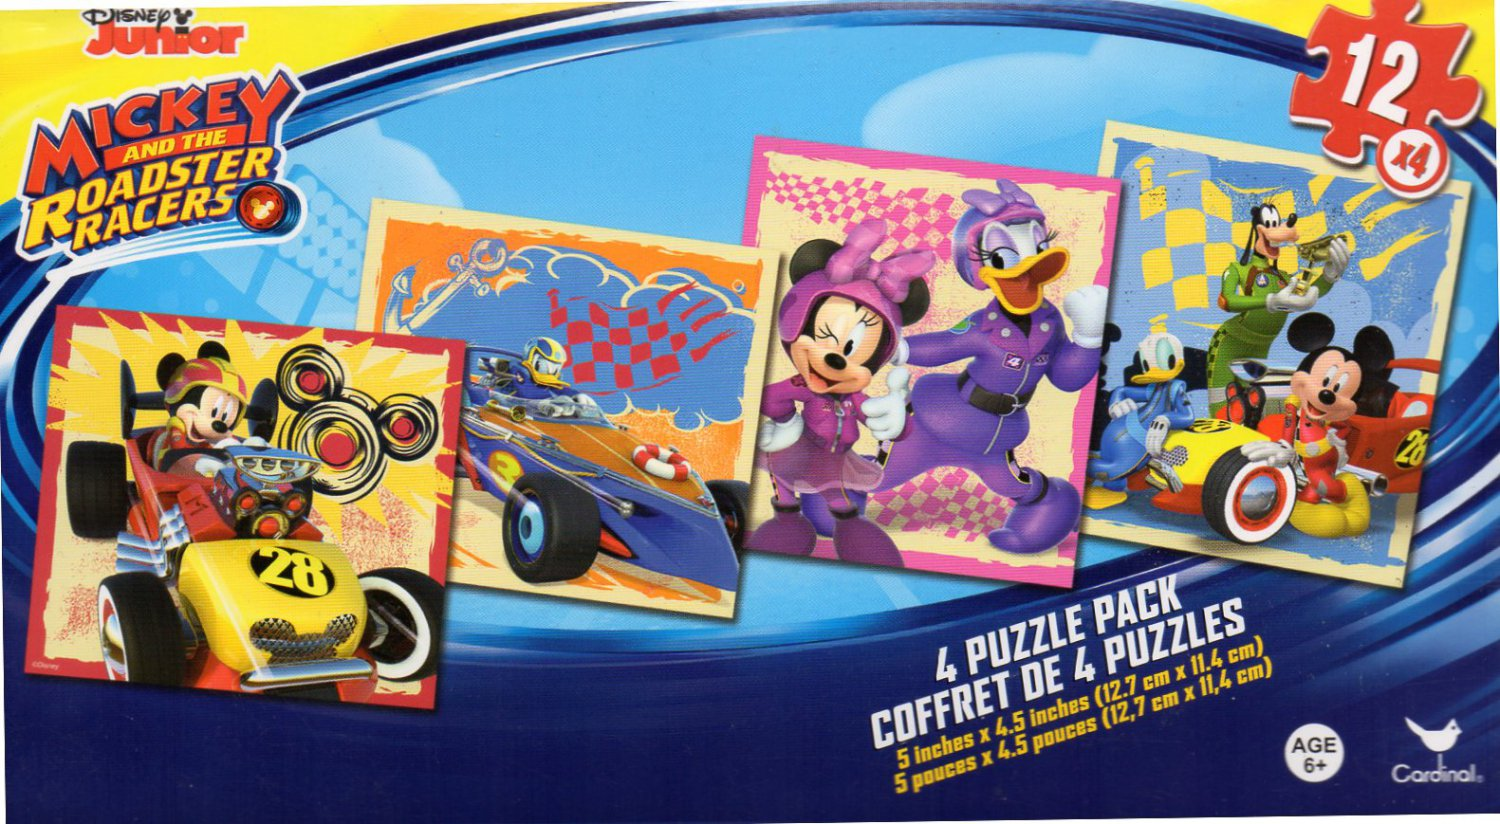 Mickey and the Roadster Racers - 4 Puzzle Pack - 12 Piece Jigsaw Puzzle (Set of 4 Different Puzzles)